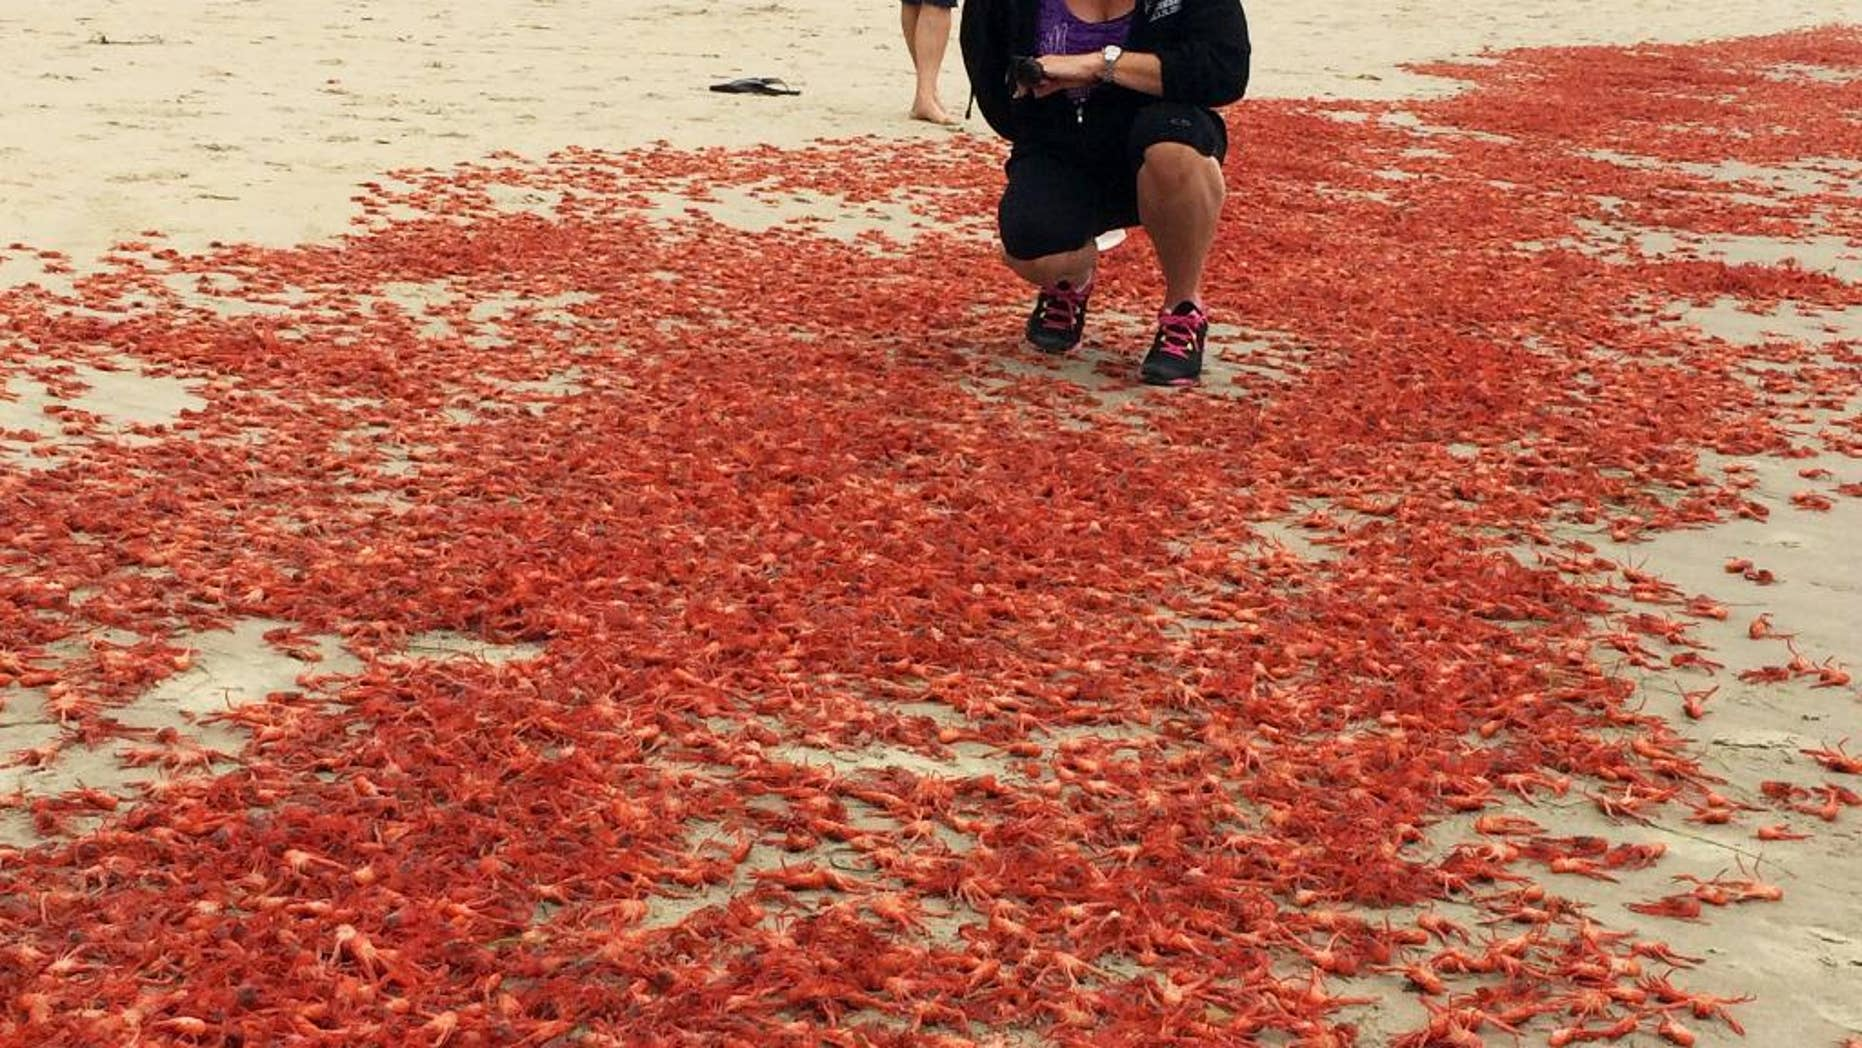 In this photo provided by Lyn Michelle Evins, Donna Kalez, manager of Dana Wharf Sportfishing, poses for a photo with thousands of tiny tuna crabs that washed ashore near her place of business at Strand Beach in Dana Point, Calif., Sunday, June 14, 2015.  The crabs have been washing up by the thousands on some Orange County beaches. (Lyn Michelle Evins via AP)